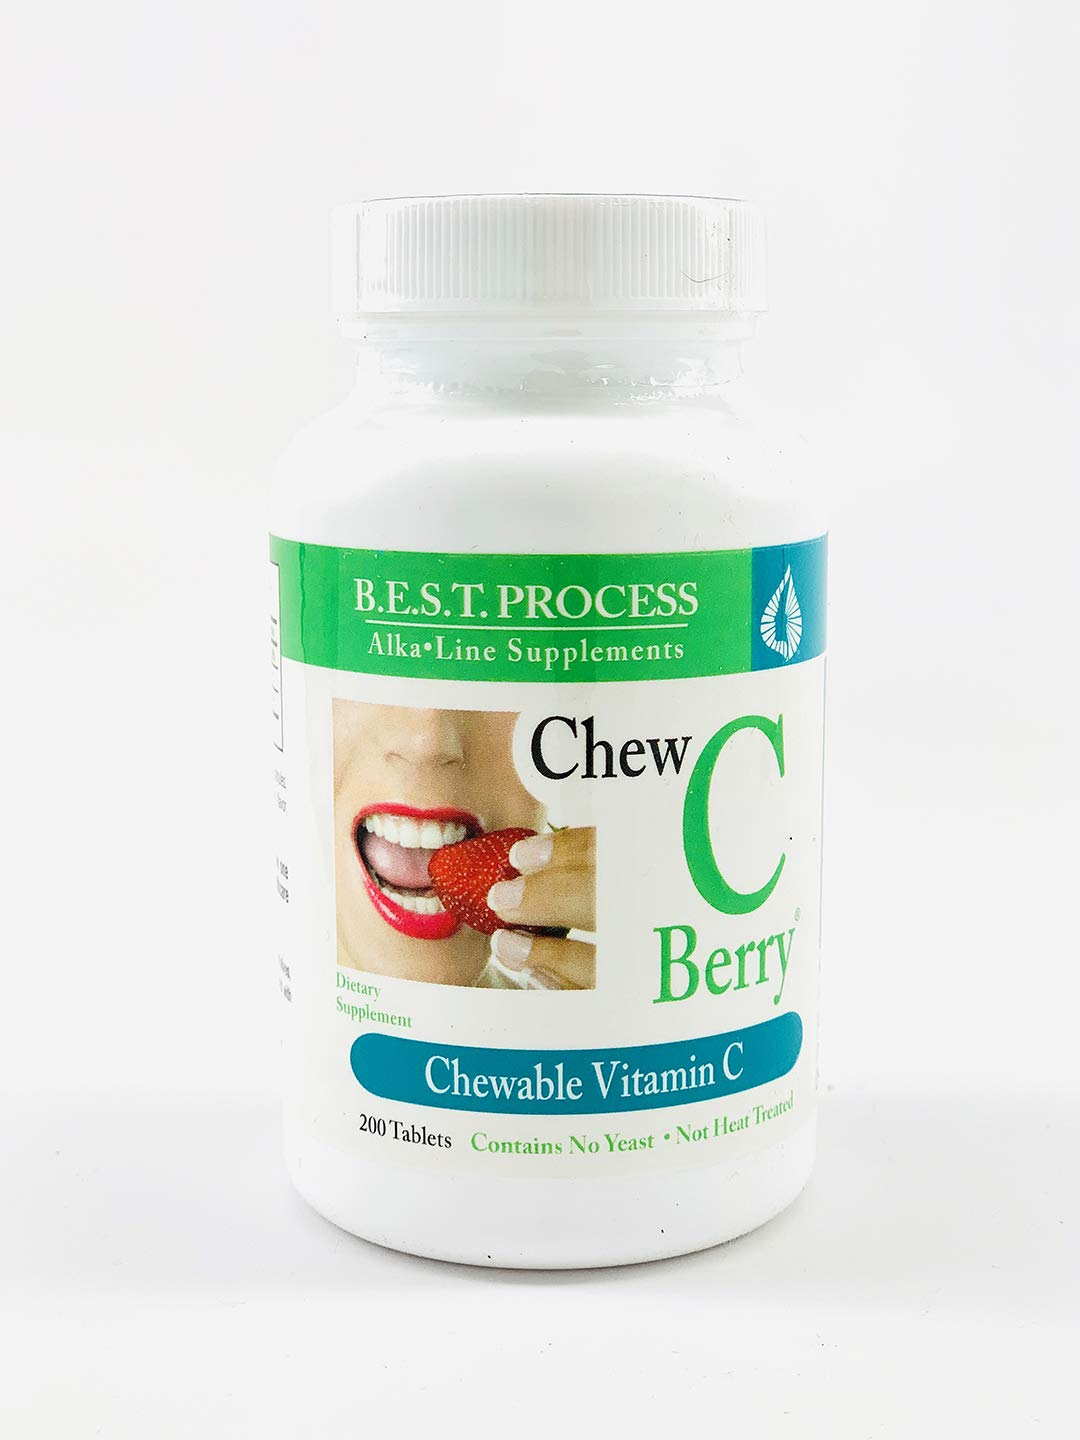 Chew C Berry by Morter HealthSystem B.E.S.T. Process Alkaline Great Tasting Chewable Vitamin C Antioxidant Supplement for Immunity, Health & Wellness with Rose Hips & Rutin